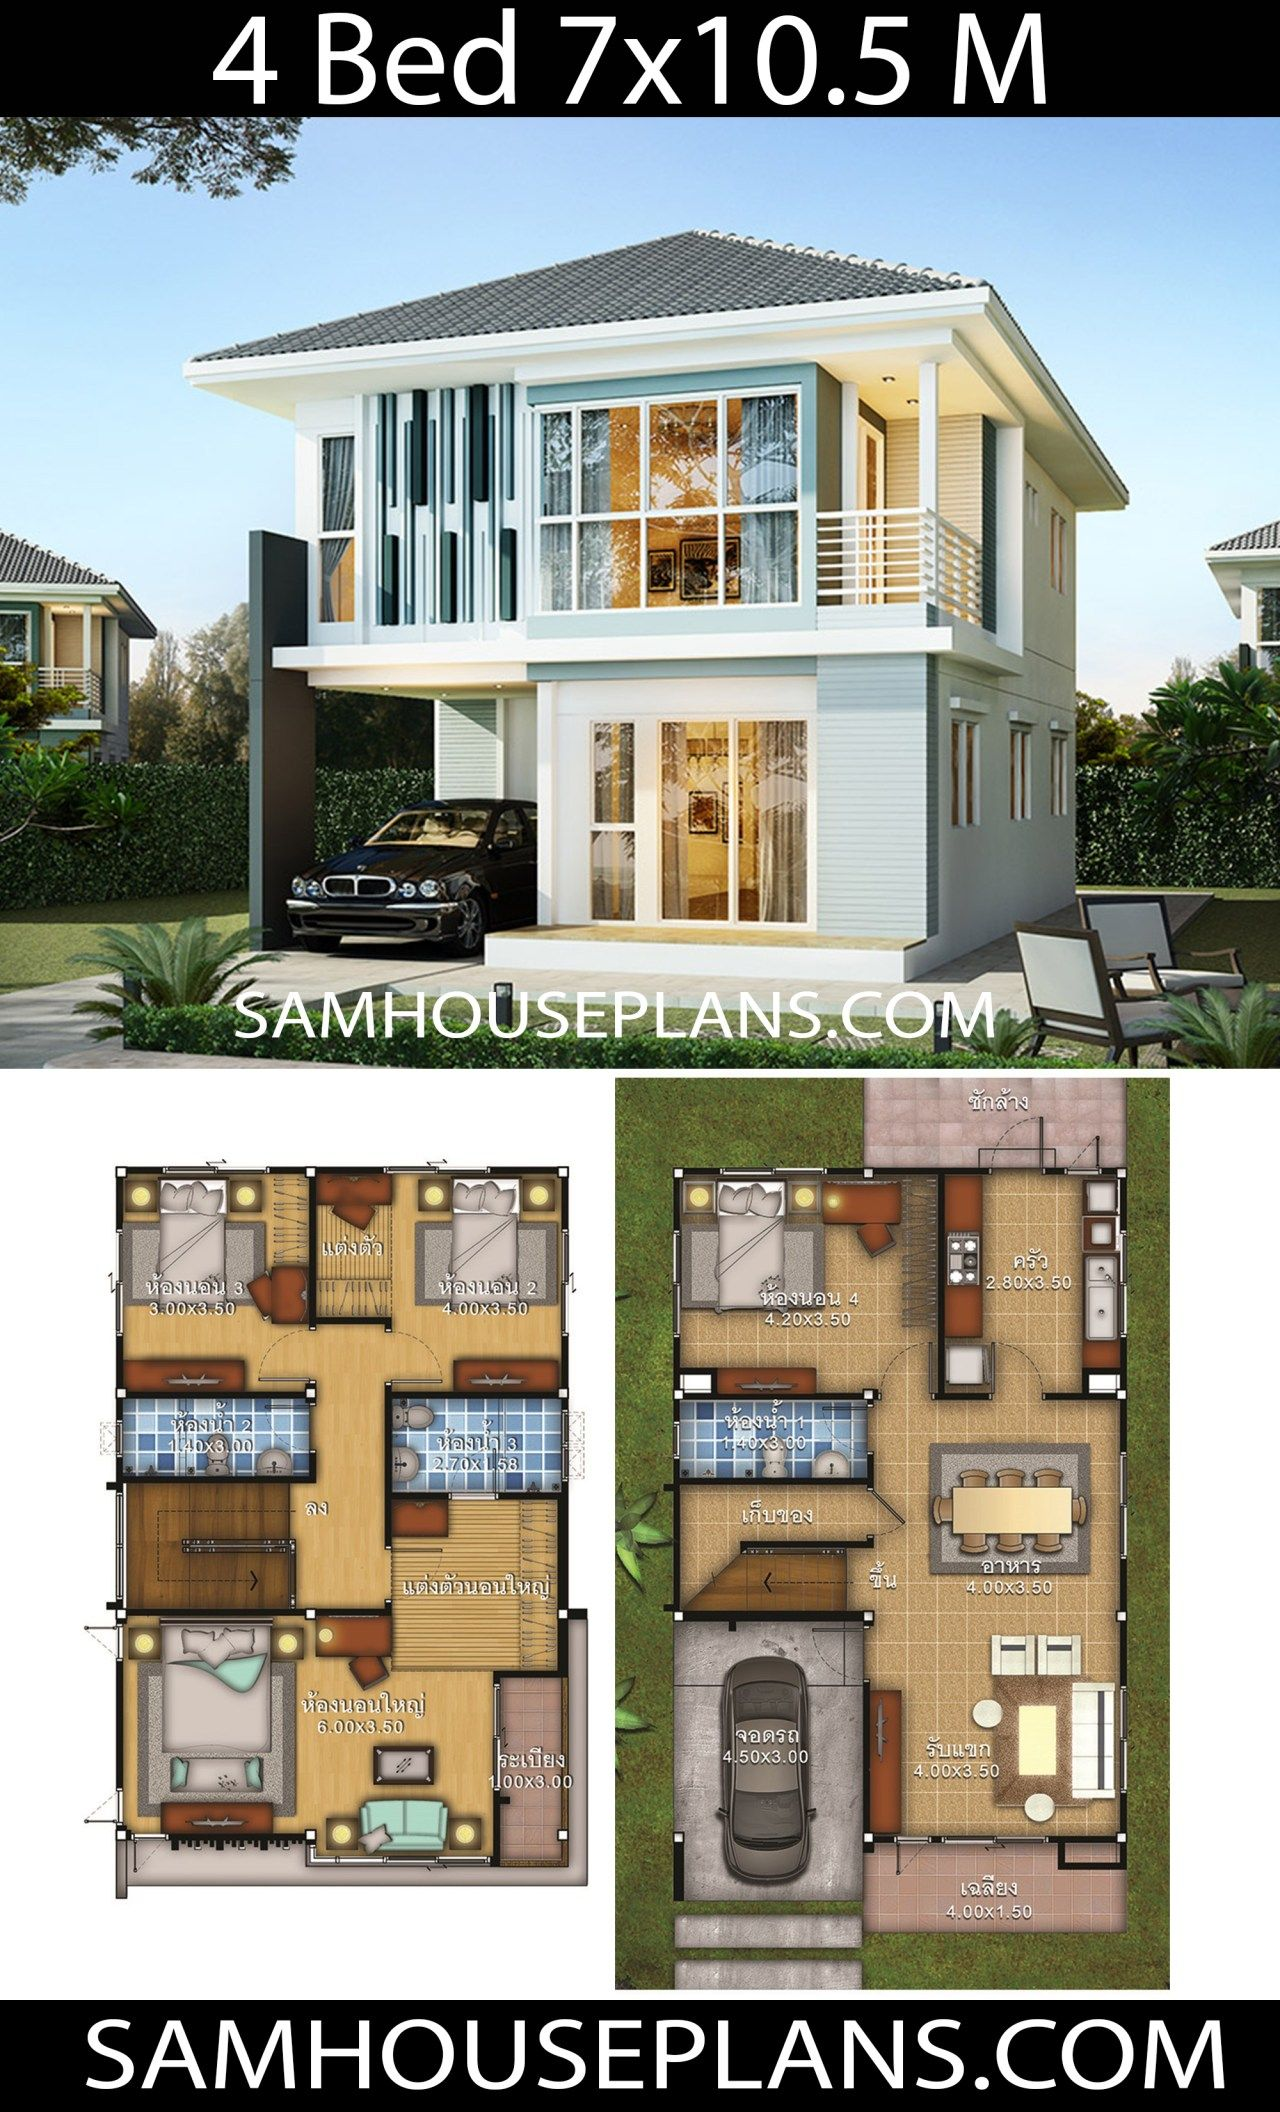 House Design Idea 7x10 5 With 4 Bedrooms Sam House Plans Duplex House Design Small House Design Plans House Construction Plan